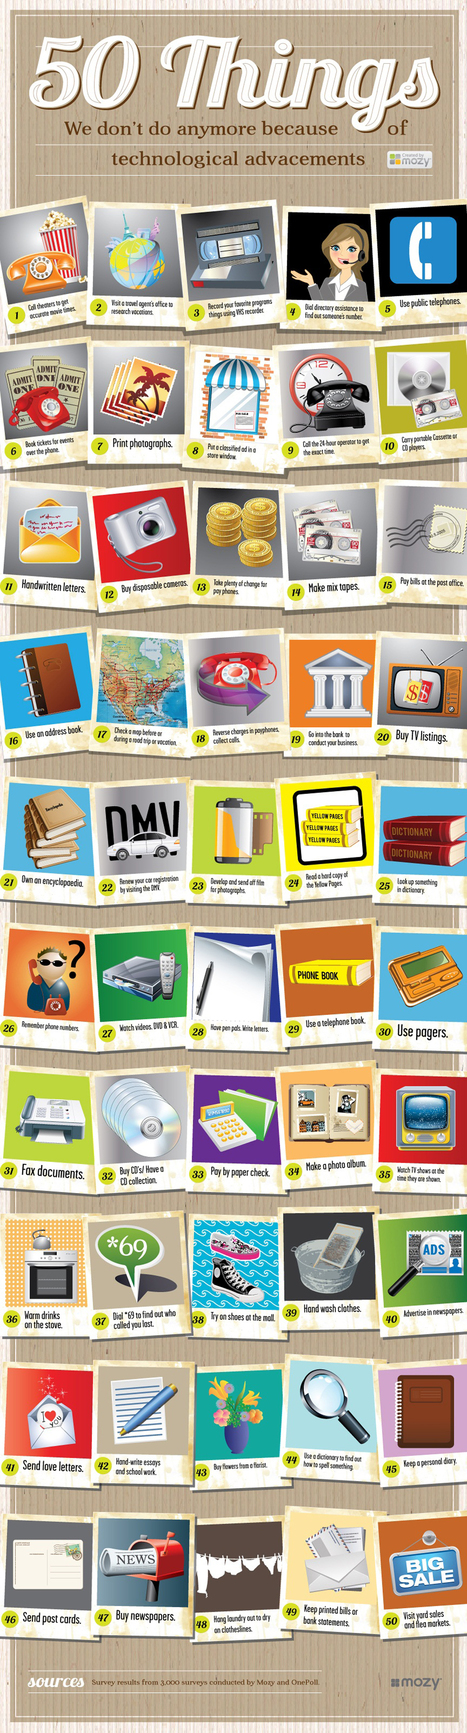 50 Things Replaced by Modern Technology | StartUP Times | Scoop.it